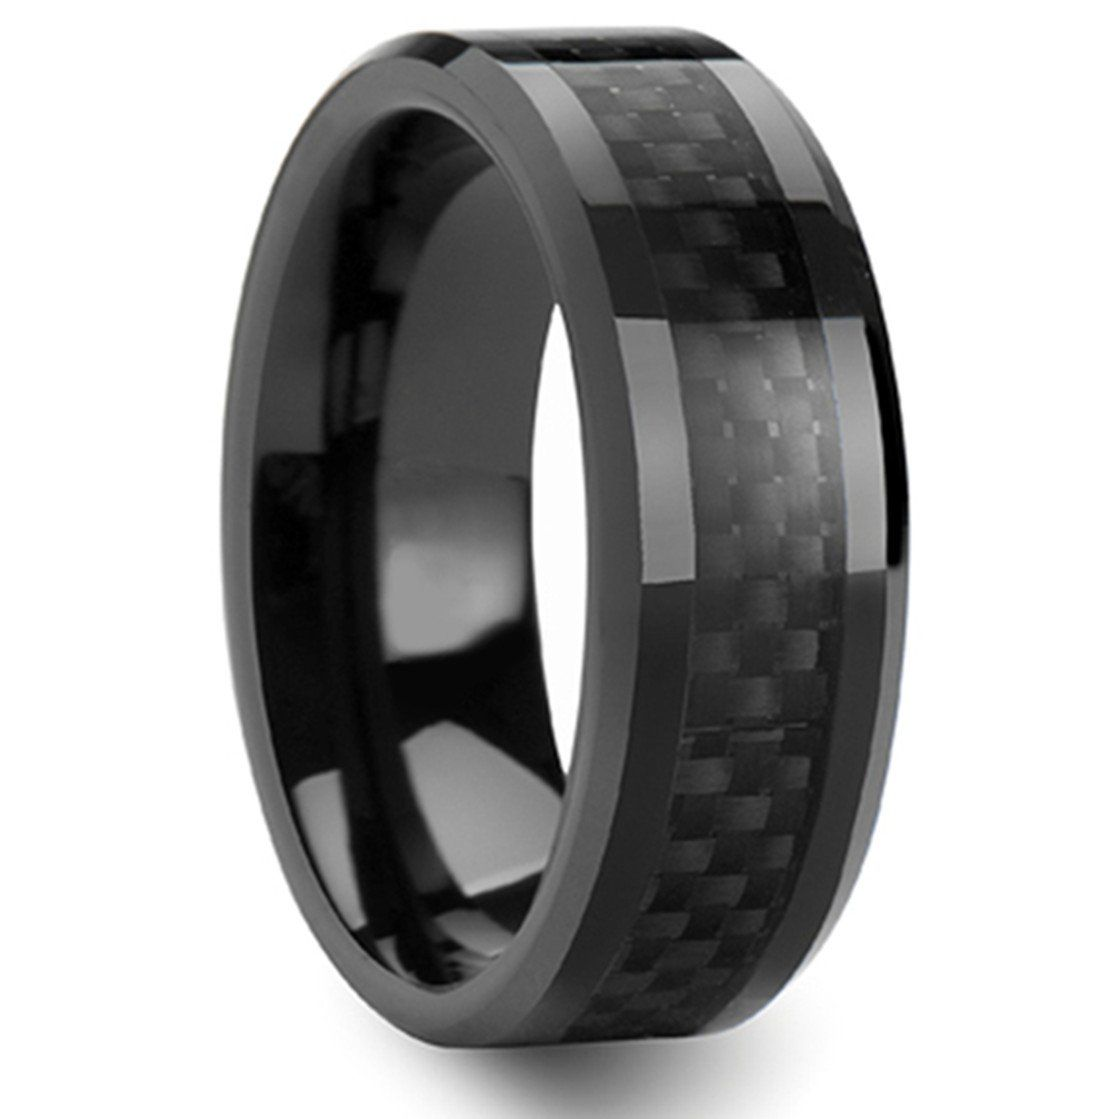 onyx wedding band King Will 8mm Black Tungsten Ring Polished Finish Carbon Fiber Inlay Beveled Edges Wedding Band For